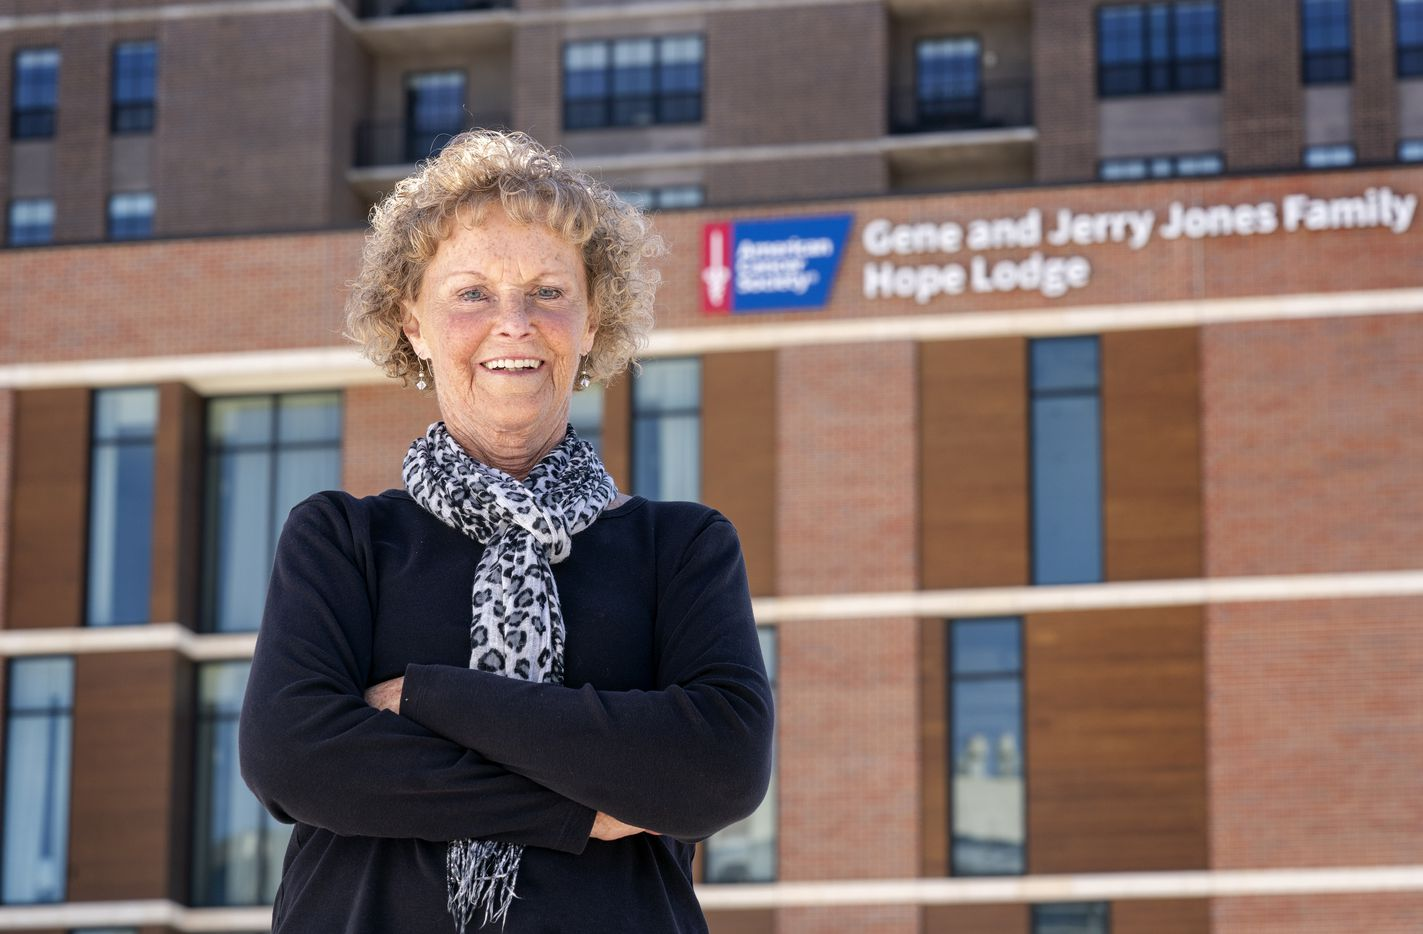 Rose Riley poses for a portrait outside Hope Lodge. She drives from Oklahoma for treatment at UT Southwestern and was the first person to stay at the new facility in Deep Ellum.